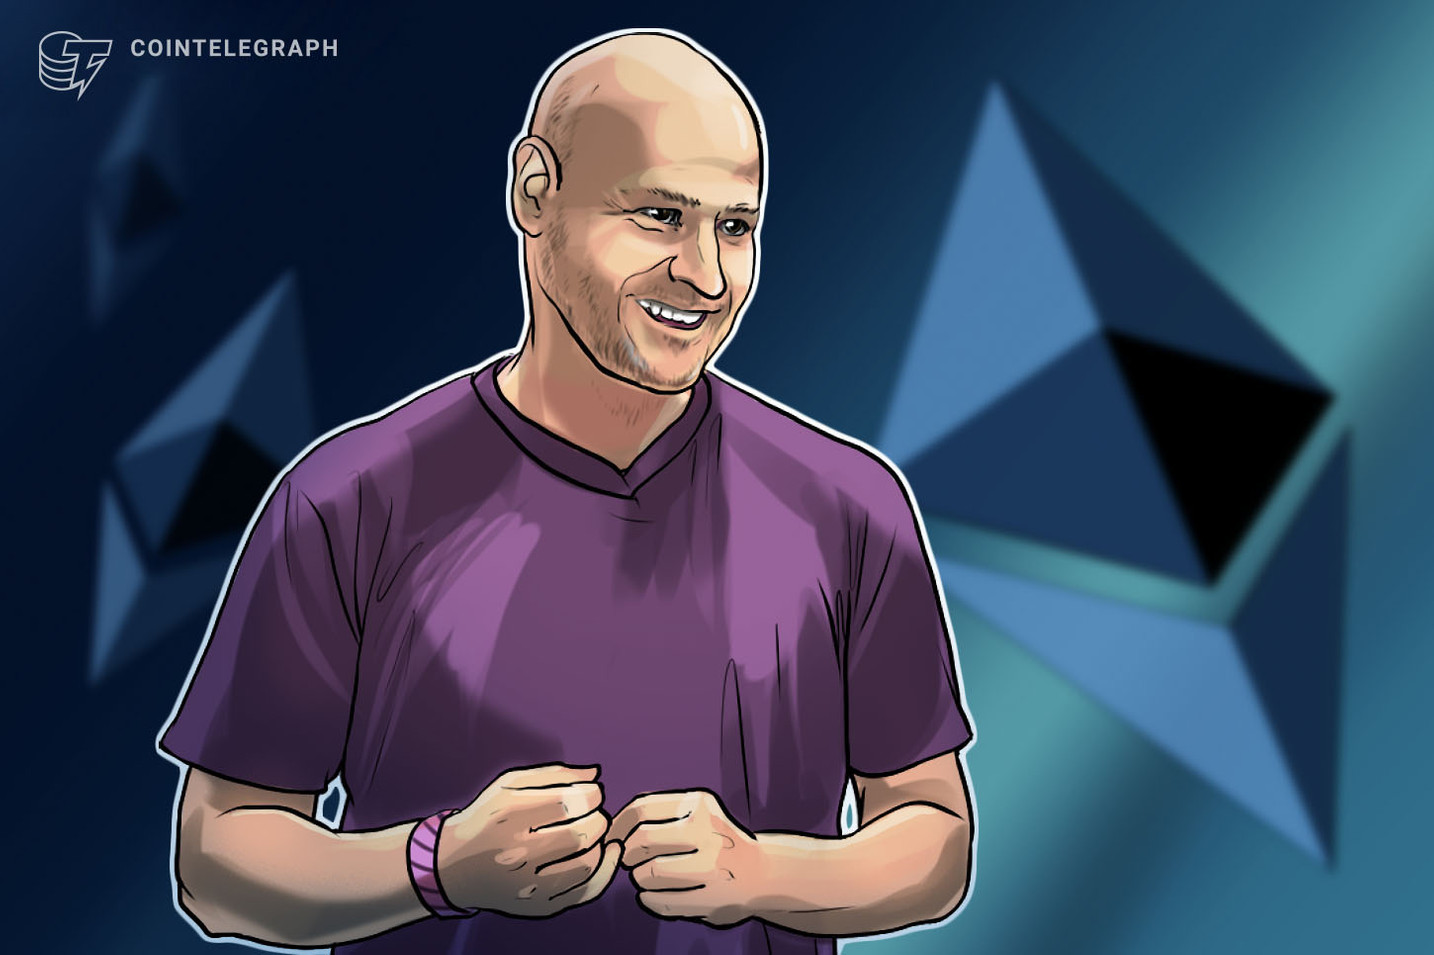 Joe Lubin: China Will Avoid Blockchain's 'Decentralizing Aspects'